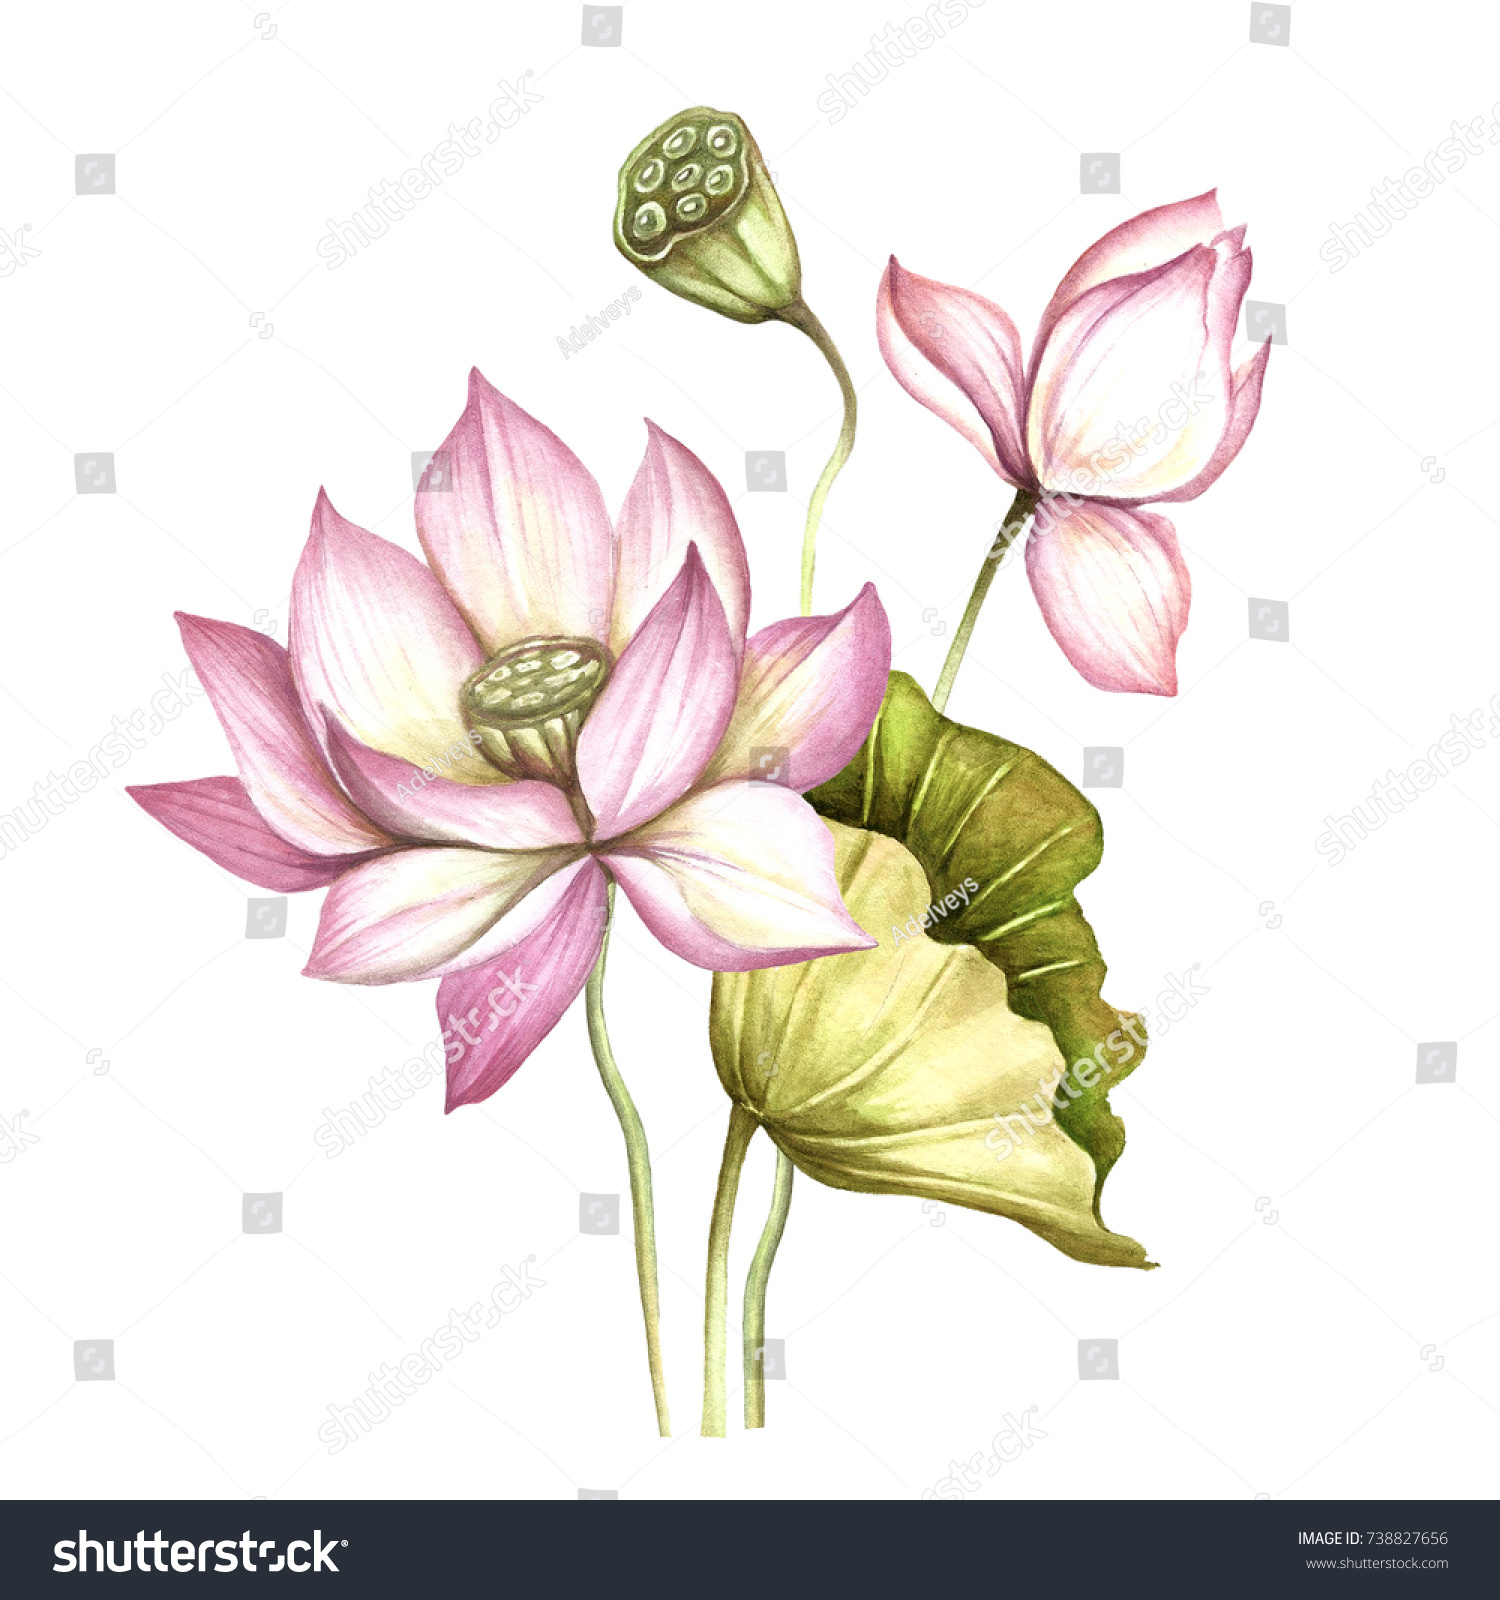 Composition lotus hand draw watercolor illustration stock composition with lotus hand draw watercolor illustration izmirmasajfo